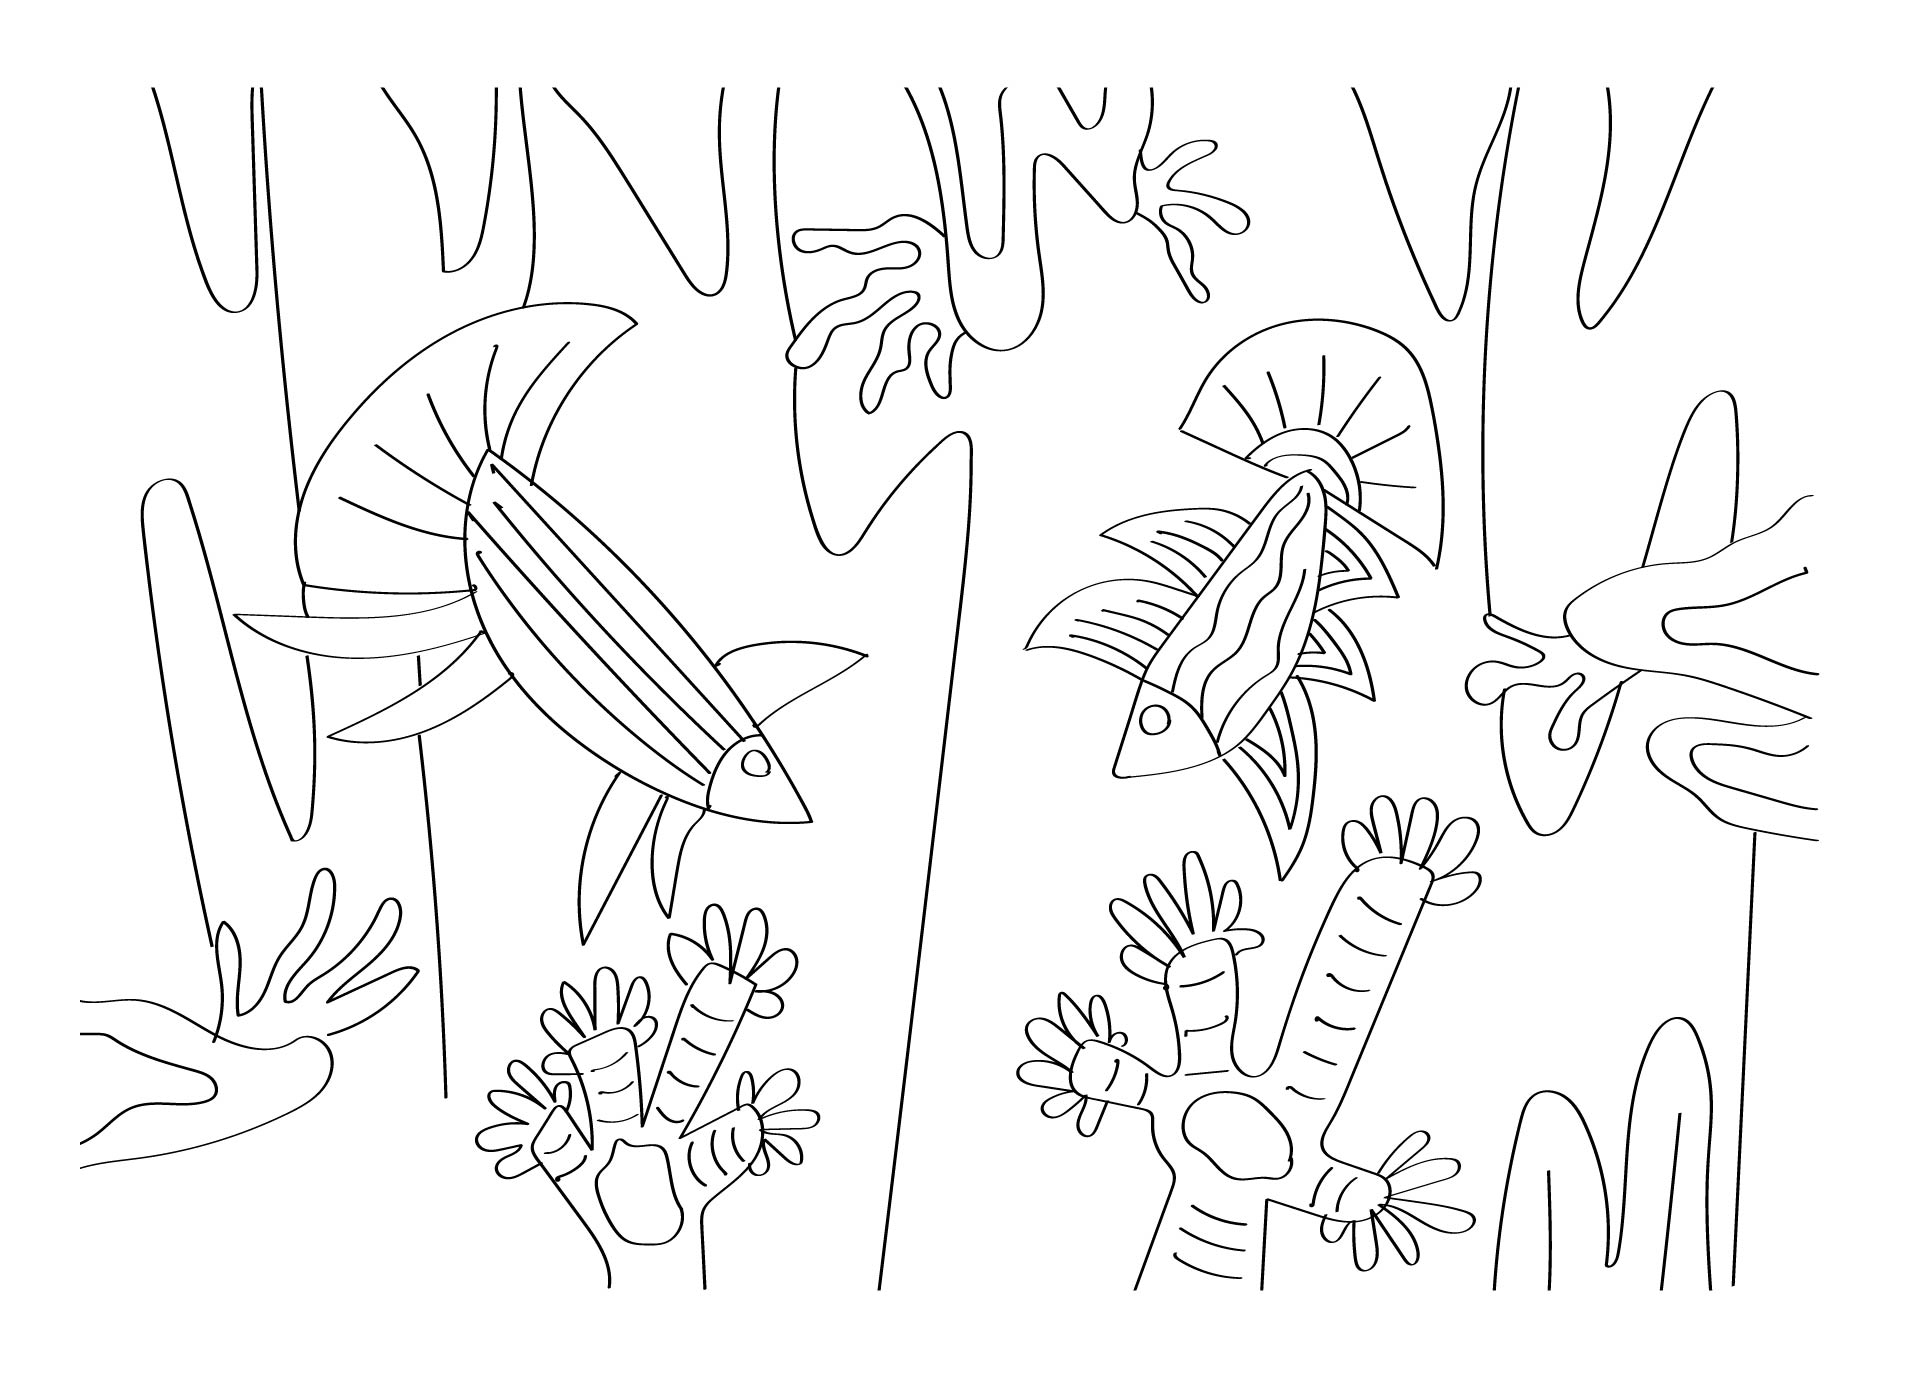 - 8 Best Printable Coloring Pages Doodle Art - Printablee.com